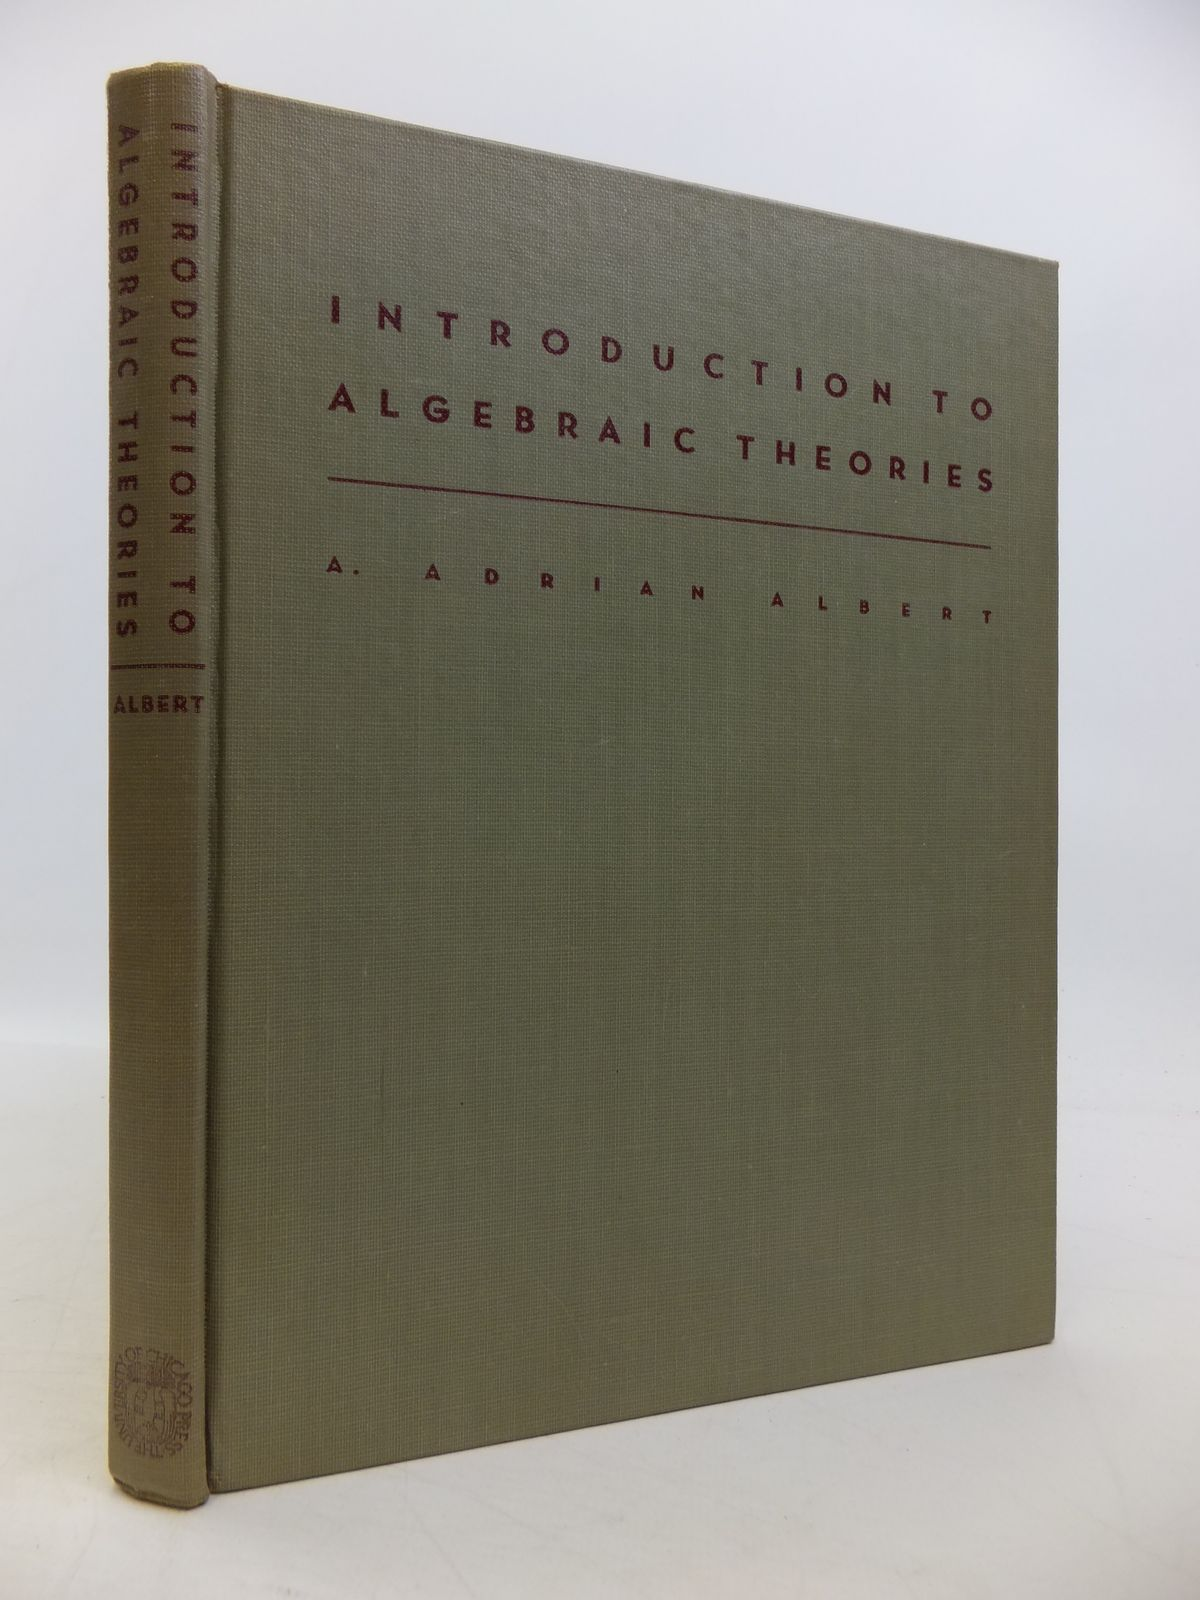 Photo of INTRODUCTION TO ALGEBRAIC THEORIES- Stock Number: 1811516